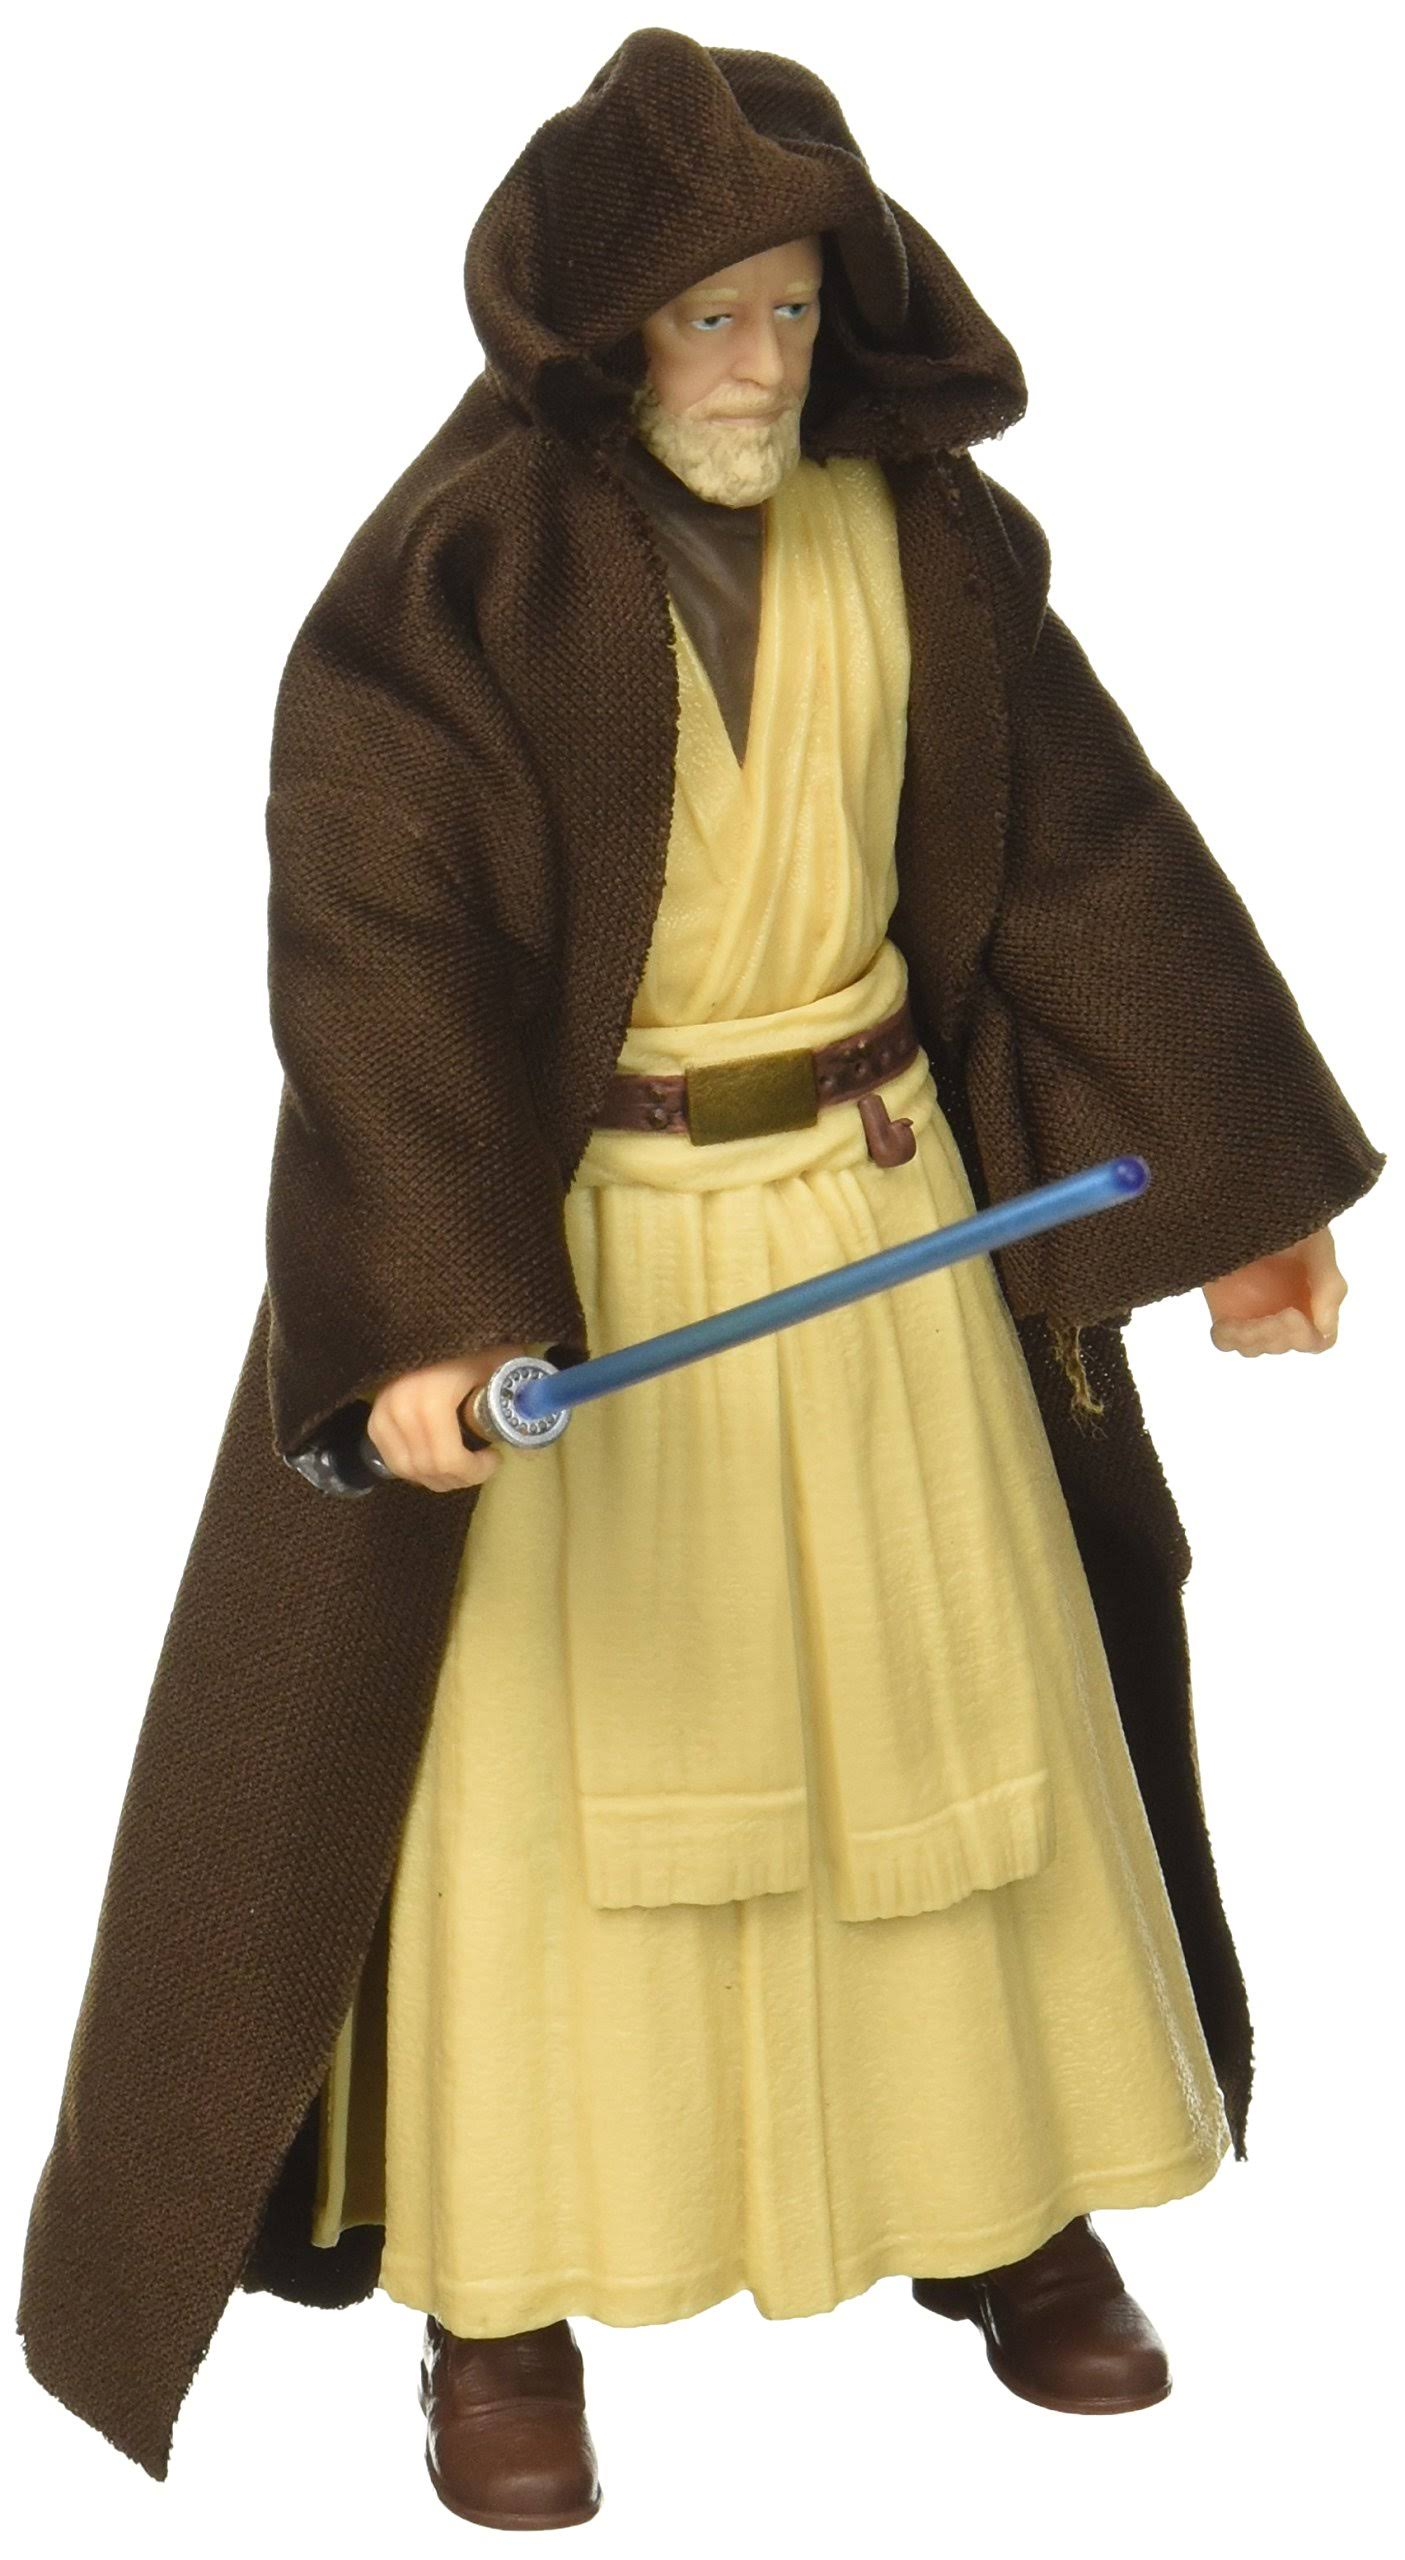 Hasbro Star Wars The Black Series Obi Wan Kenobi Action Figure - 6""